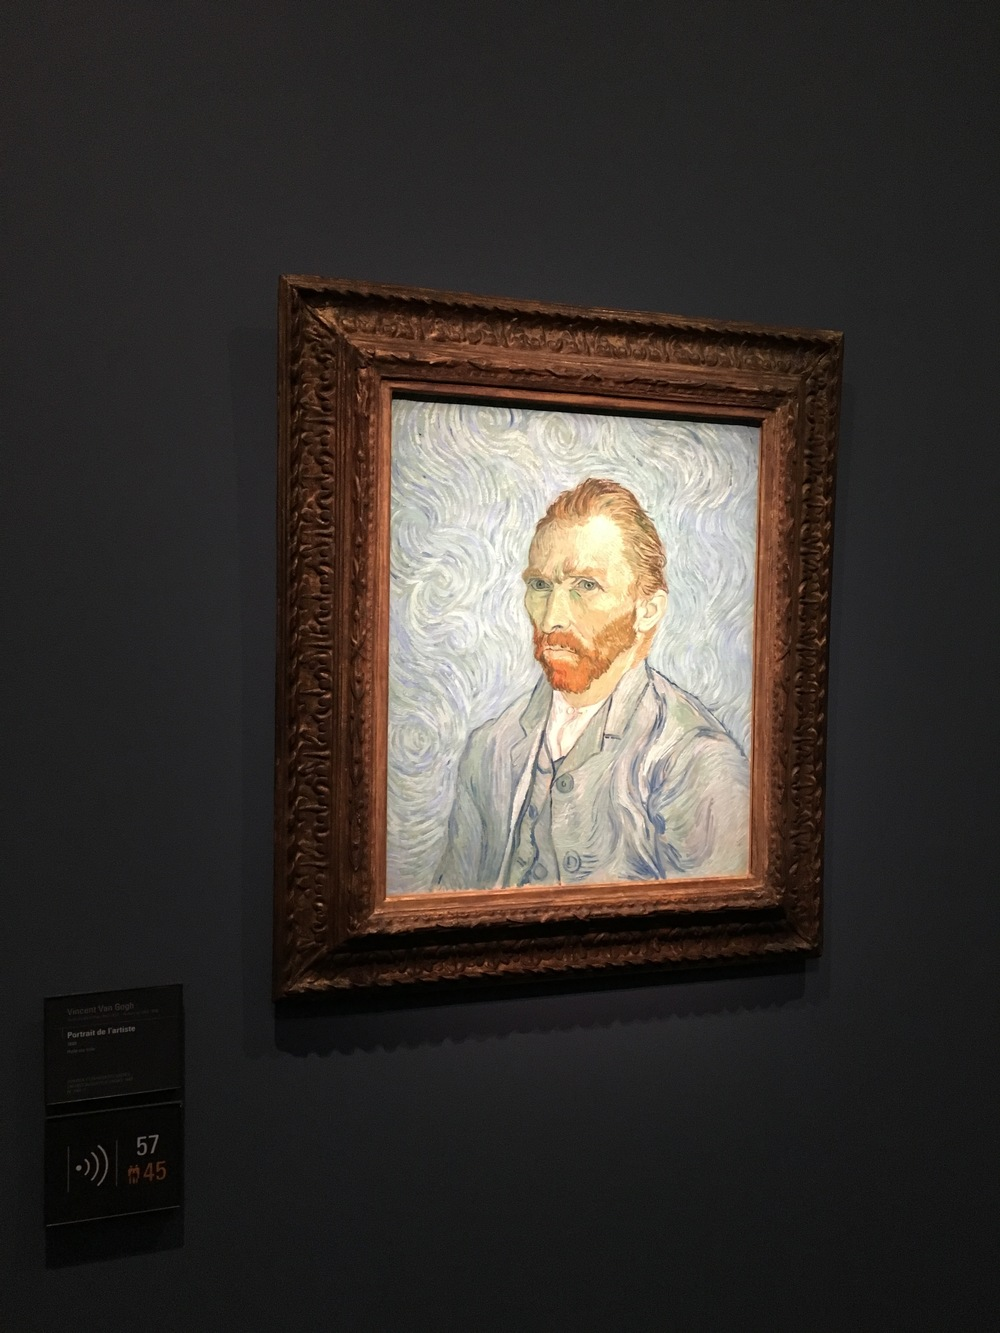 My favorite piece- self portrait of Van Gogh